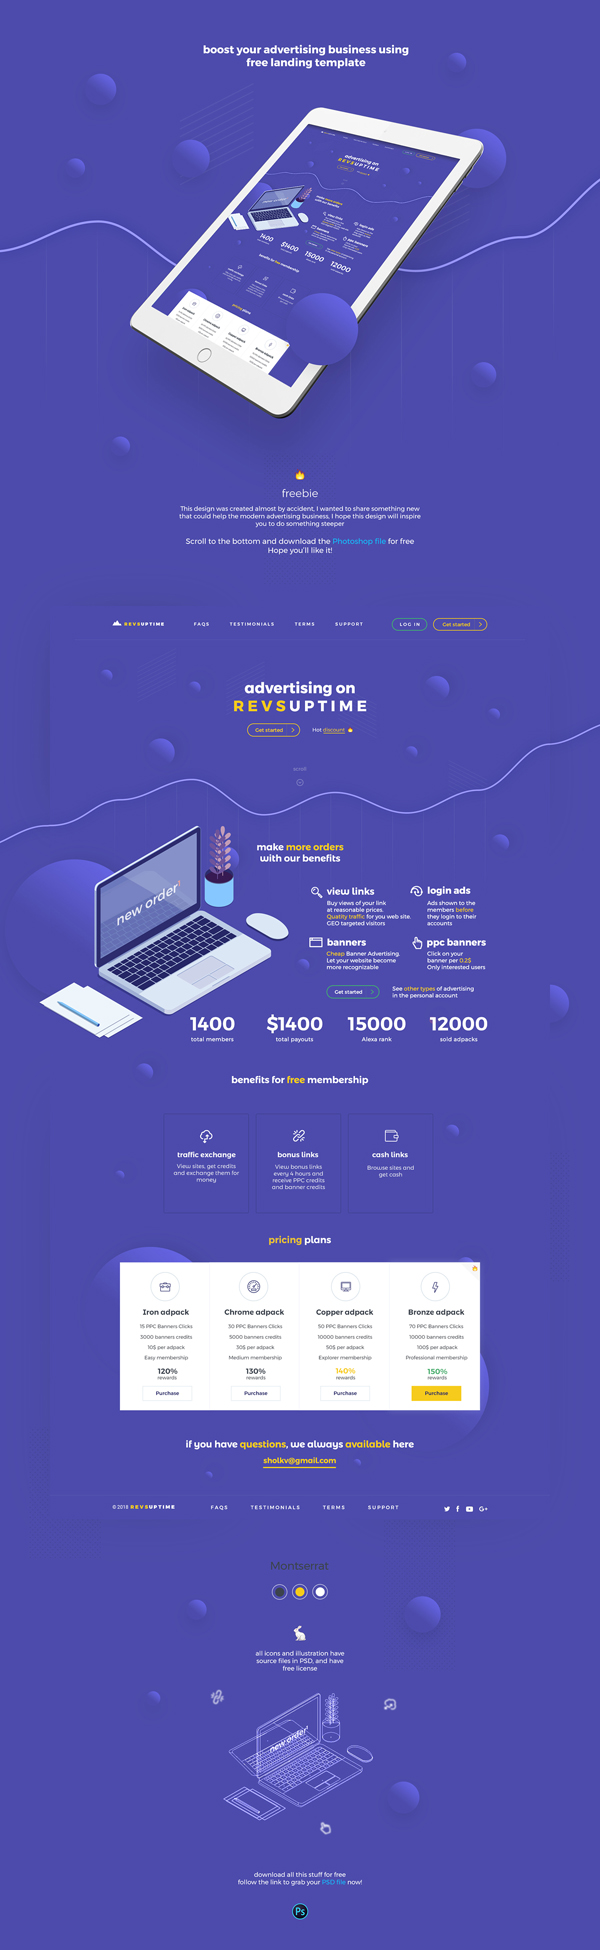 Free Advertising Landing Page Template